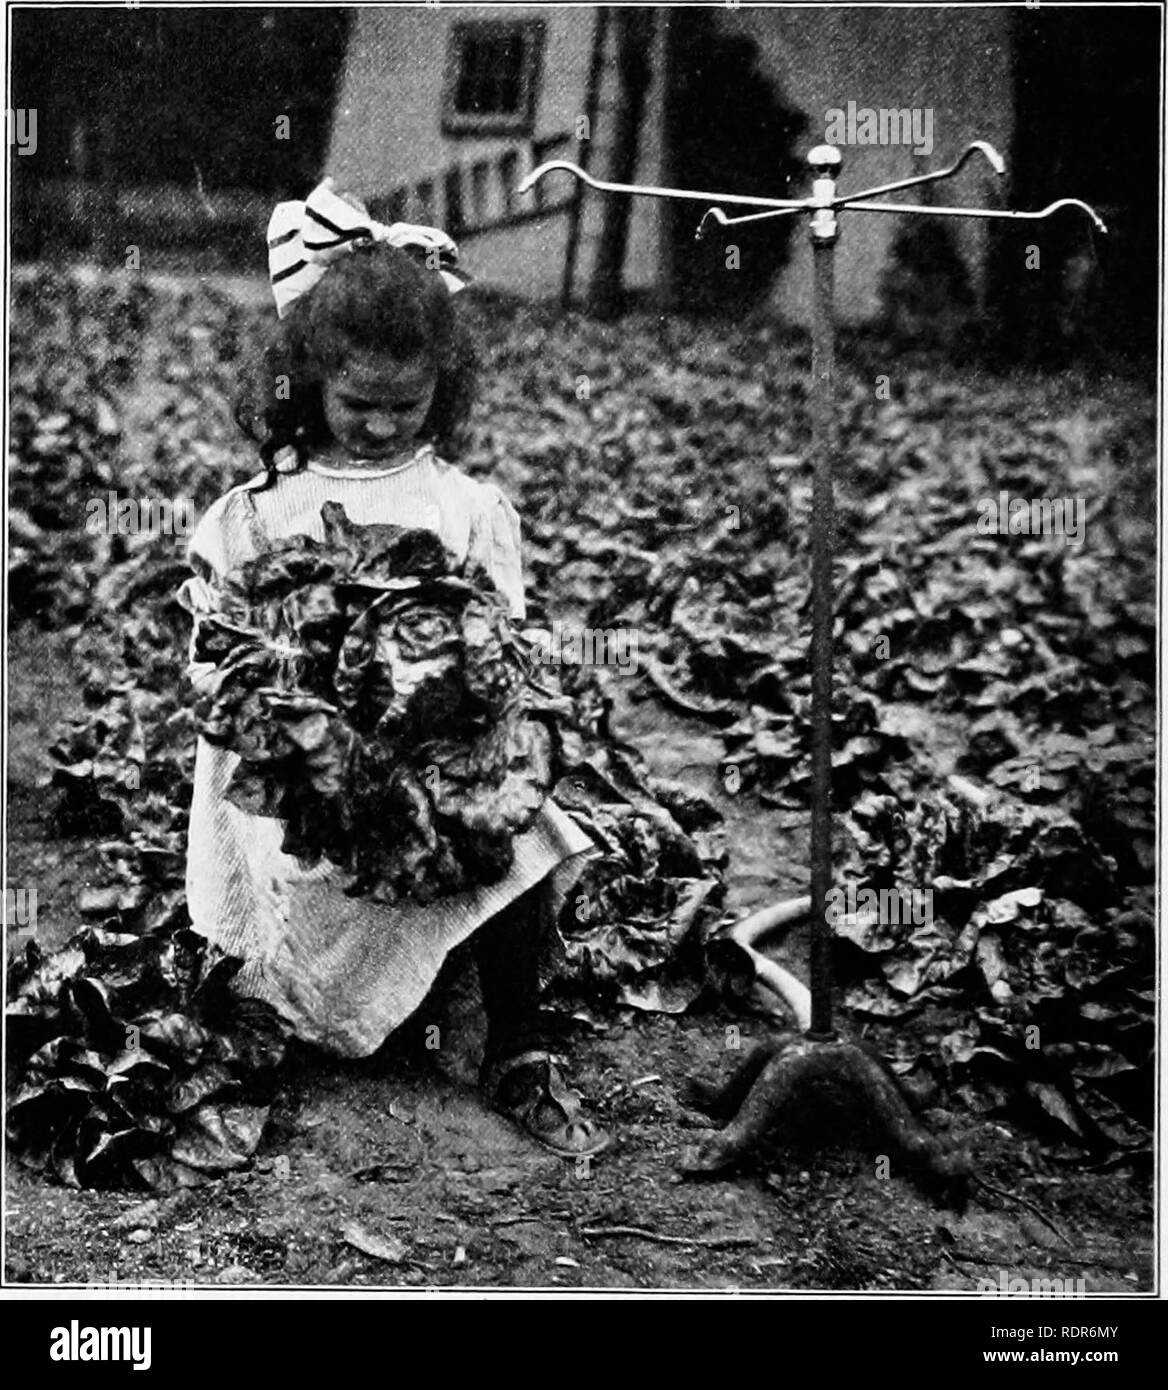 . Gardens and their meaning, by Dora Williams. School gardens. 4 GARDENS AND THEIR MEANING business questions, as these directly affect the goods they want to dispose of. They will see- the wisdom of keeping strict accounts, a practice only too frequently neglected among farmers as a class. All these practical issues, moreover, will. A YOUNG PRODUCER materially help them in deciding what to specialize in. This is not mere theory. These ideas are now being worked out in many places. In some neighborhoods children actually have their regular customers, and deliver from little push- carts the fre - Stock Image